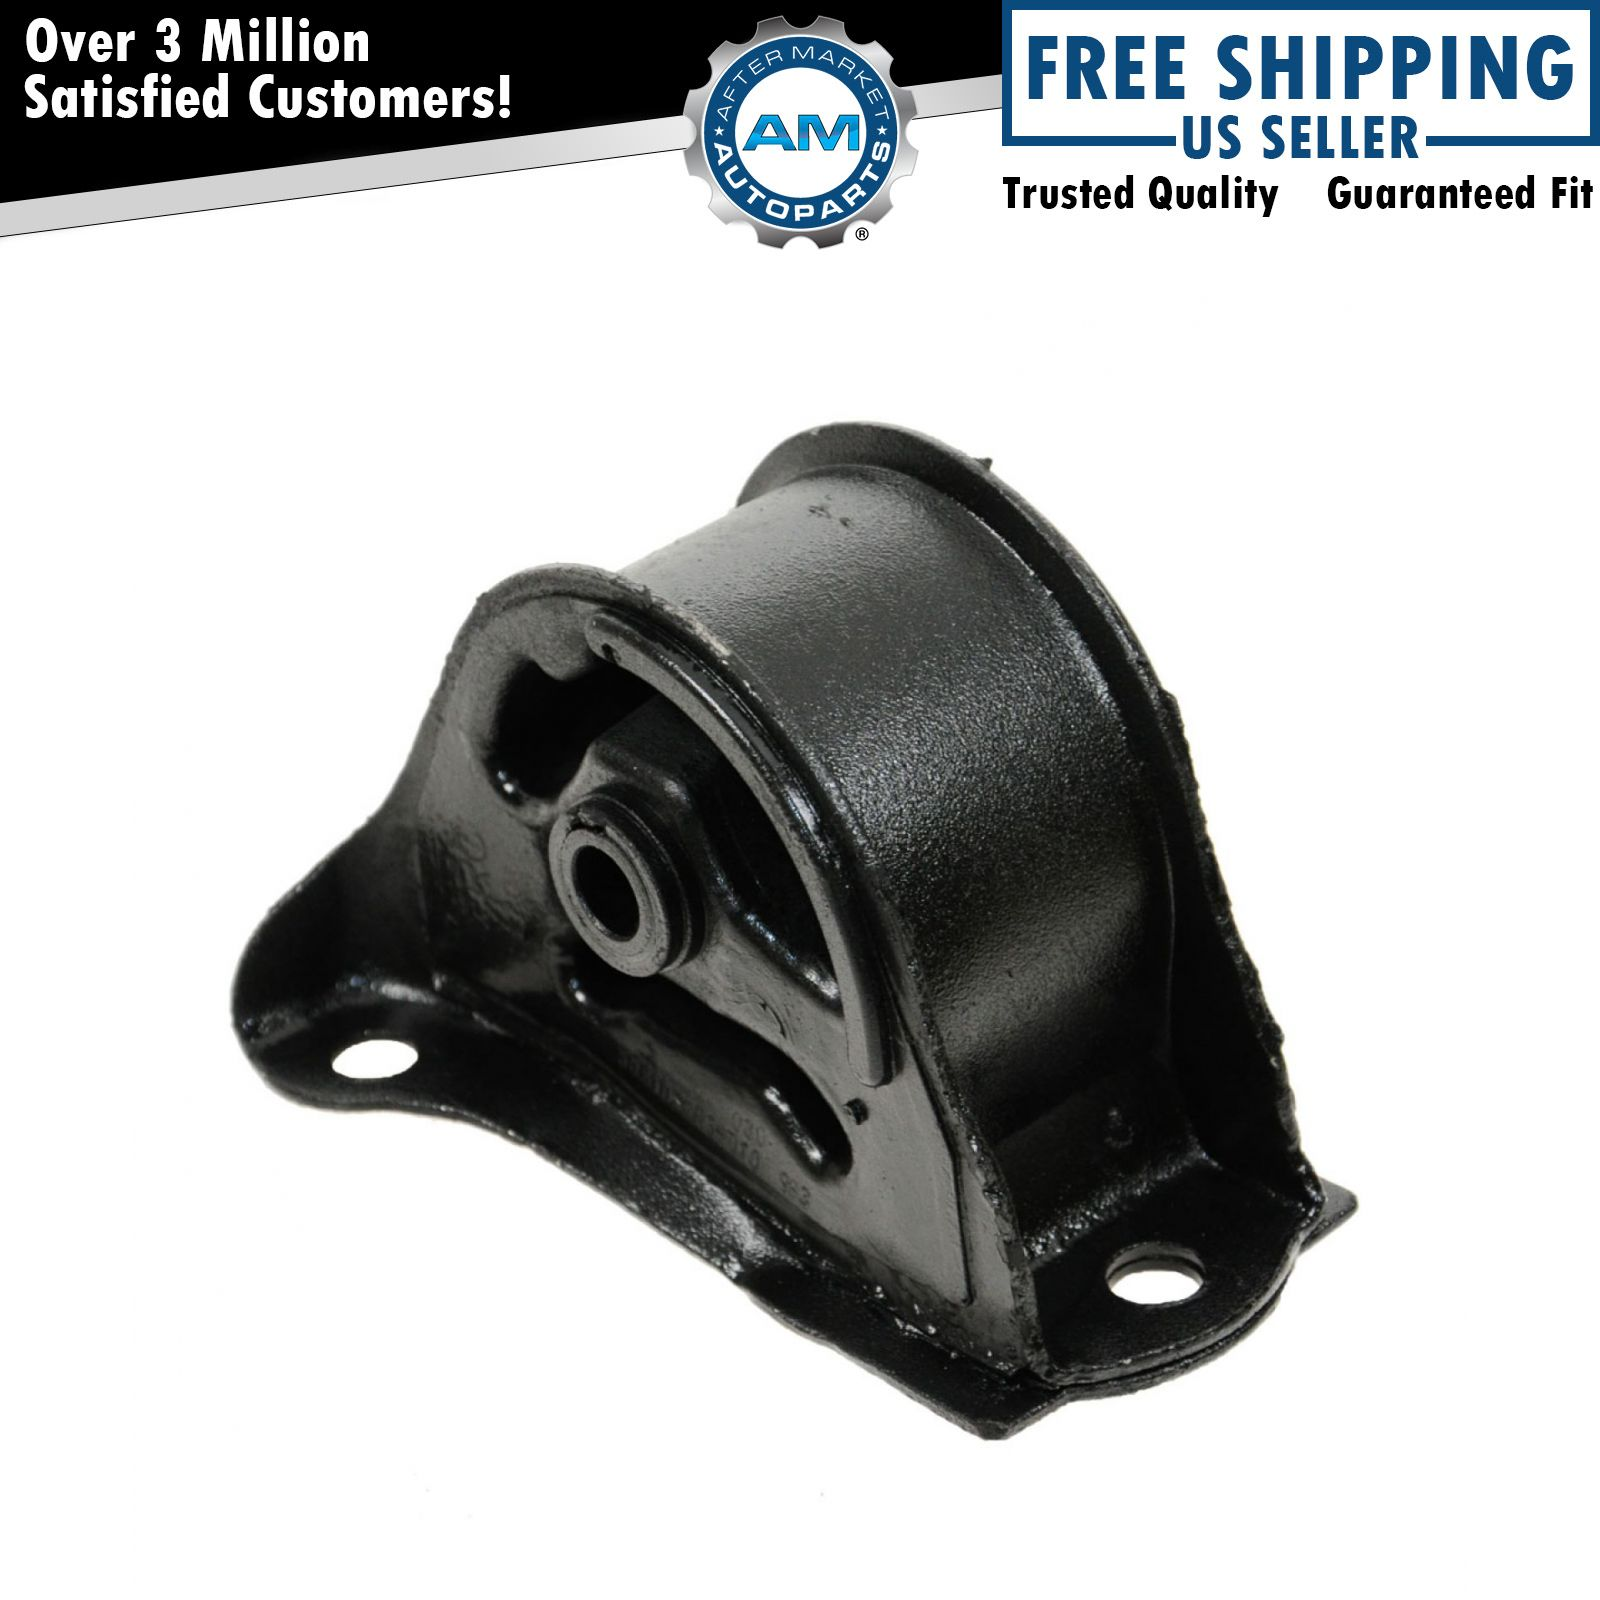 Rear engine motor mount for acura integra honda civic crv for Honda civic motor mount replacement cost